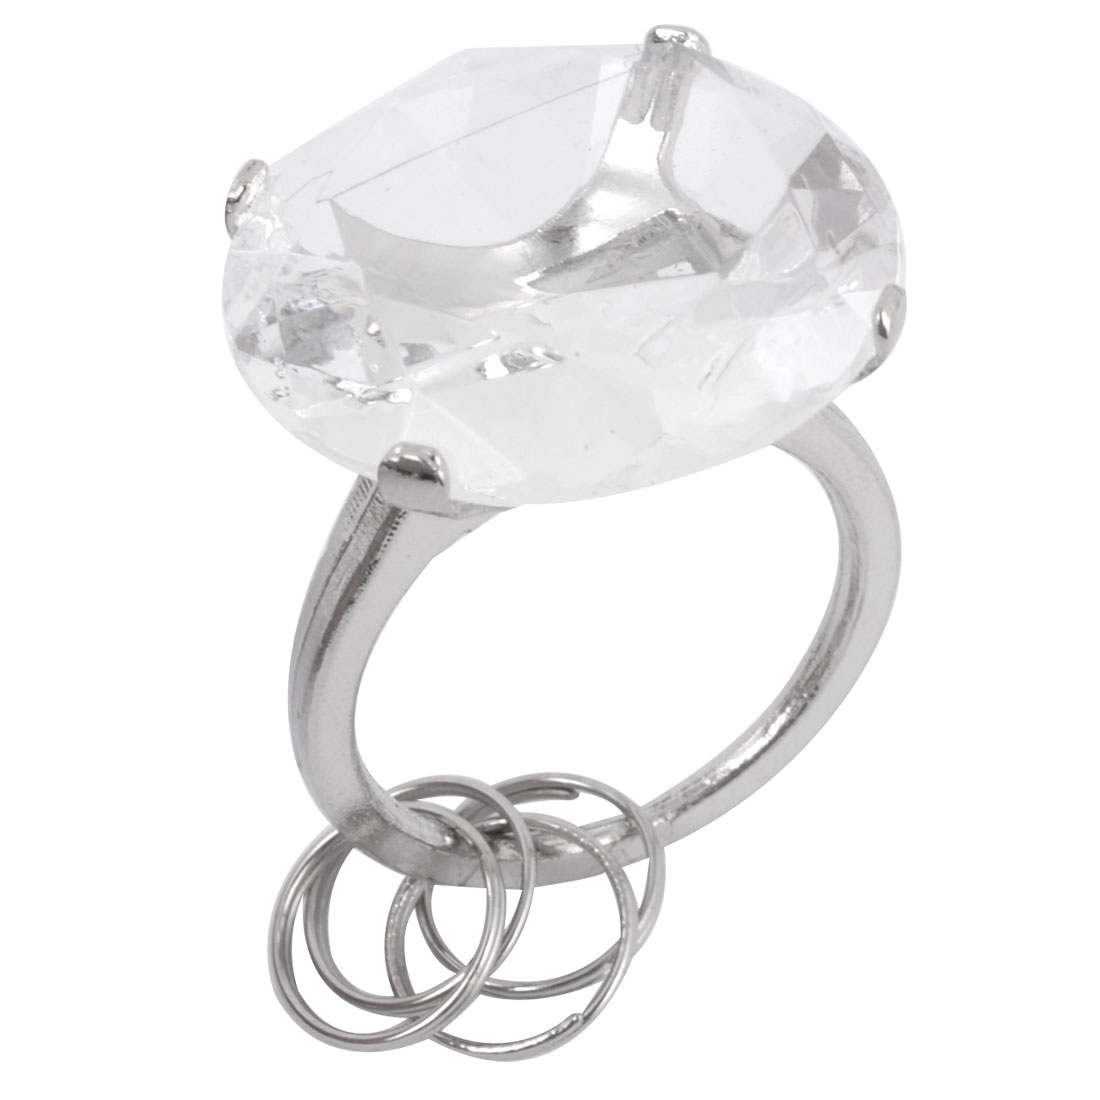 Clear White Faux Crystal Accent Plastic Circular Shape Ring Design Keyring Chain